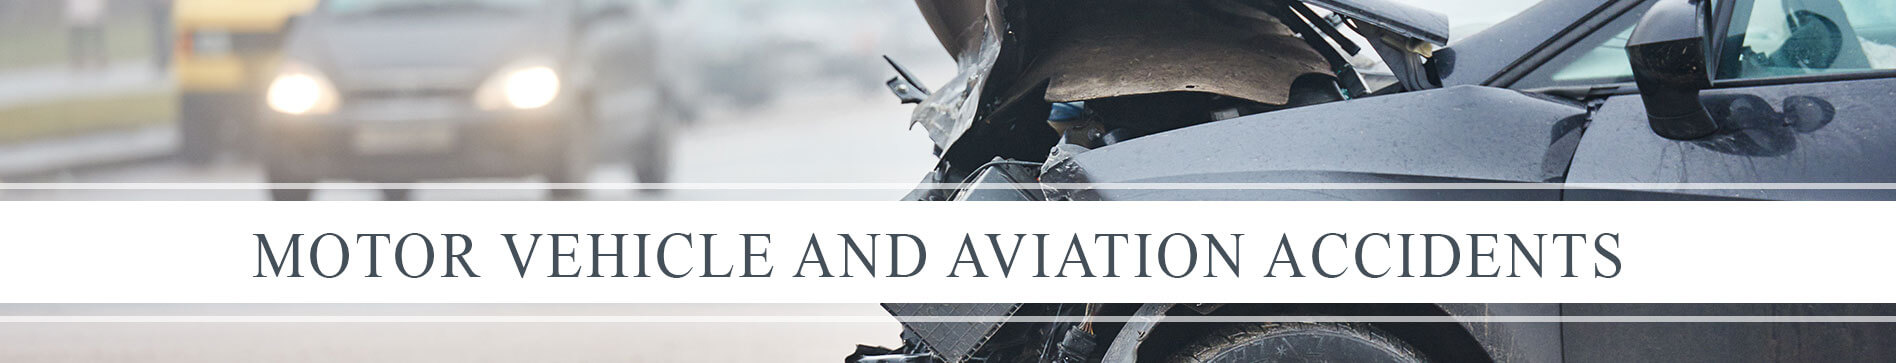 Motor Vehicle and Aviation Accidents